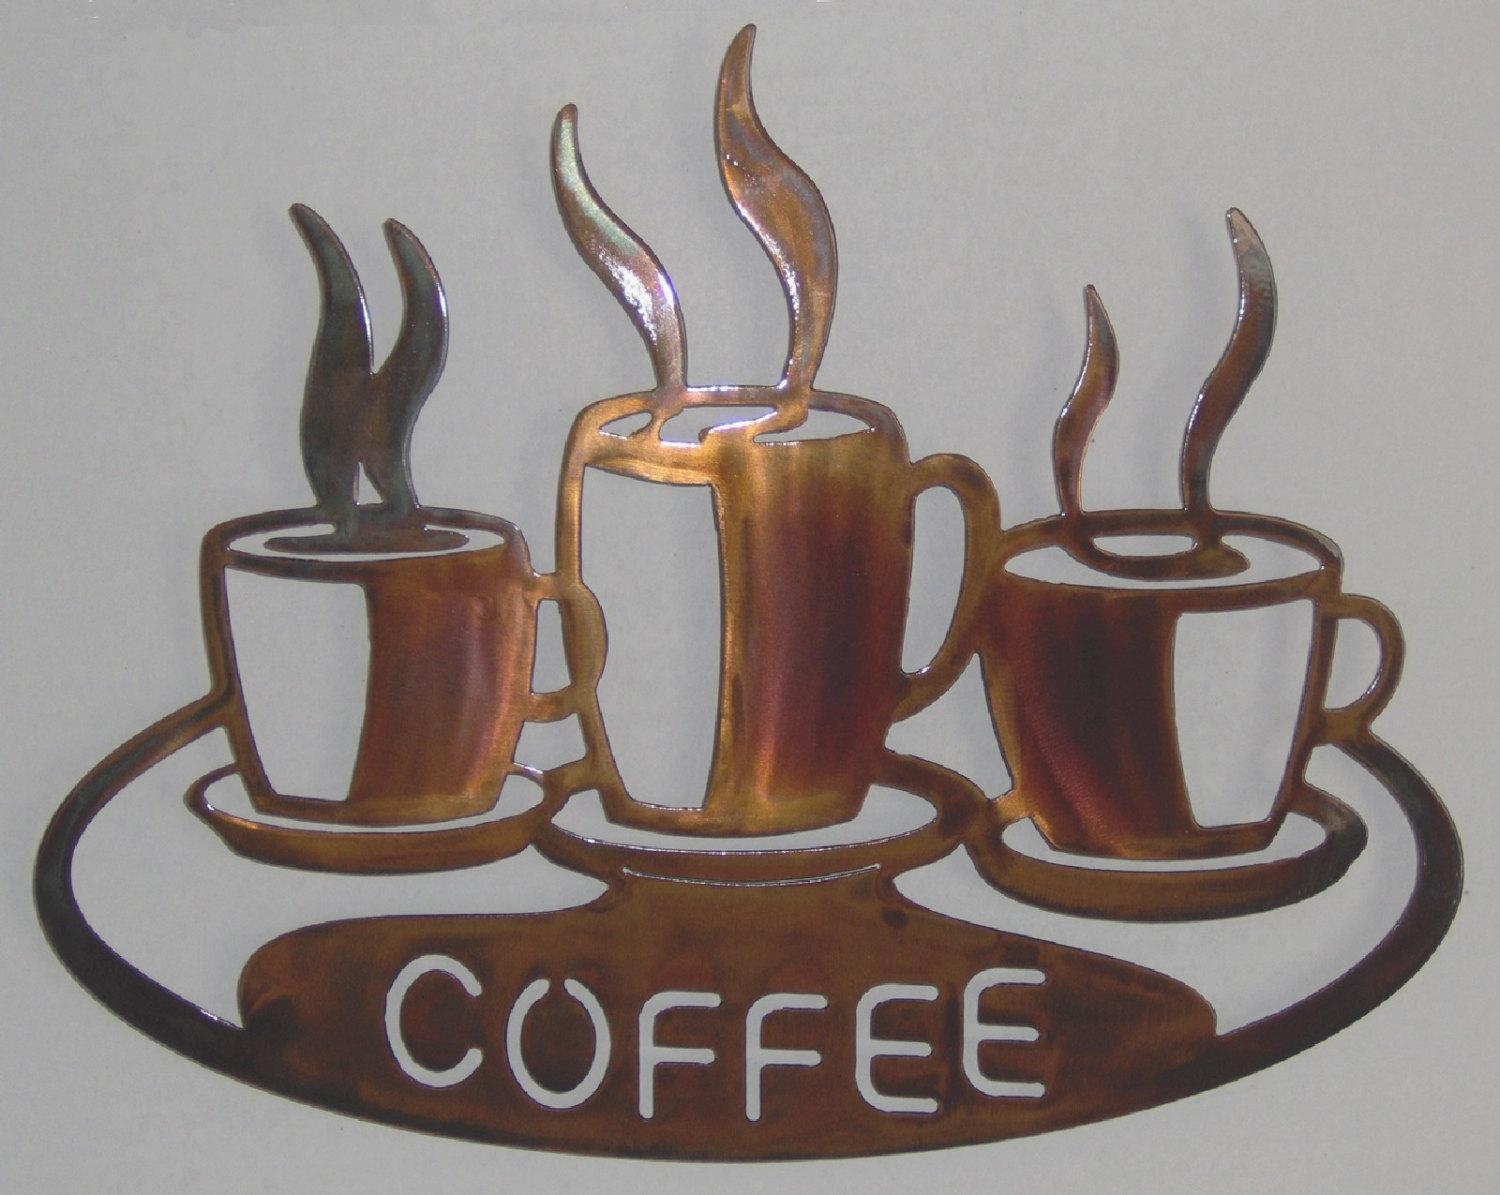 Coffee Cups On Platter Metal Wall Art Within Metal Coffee Cup Wall Art (View 8 of 20)